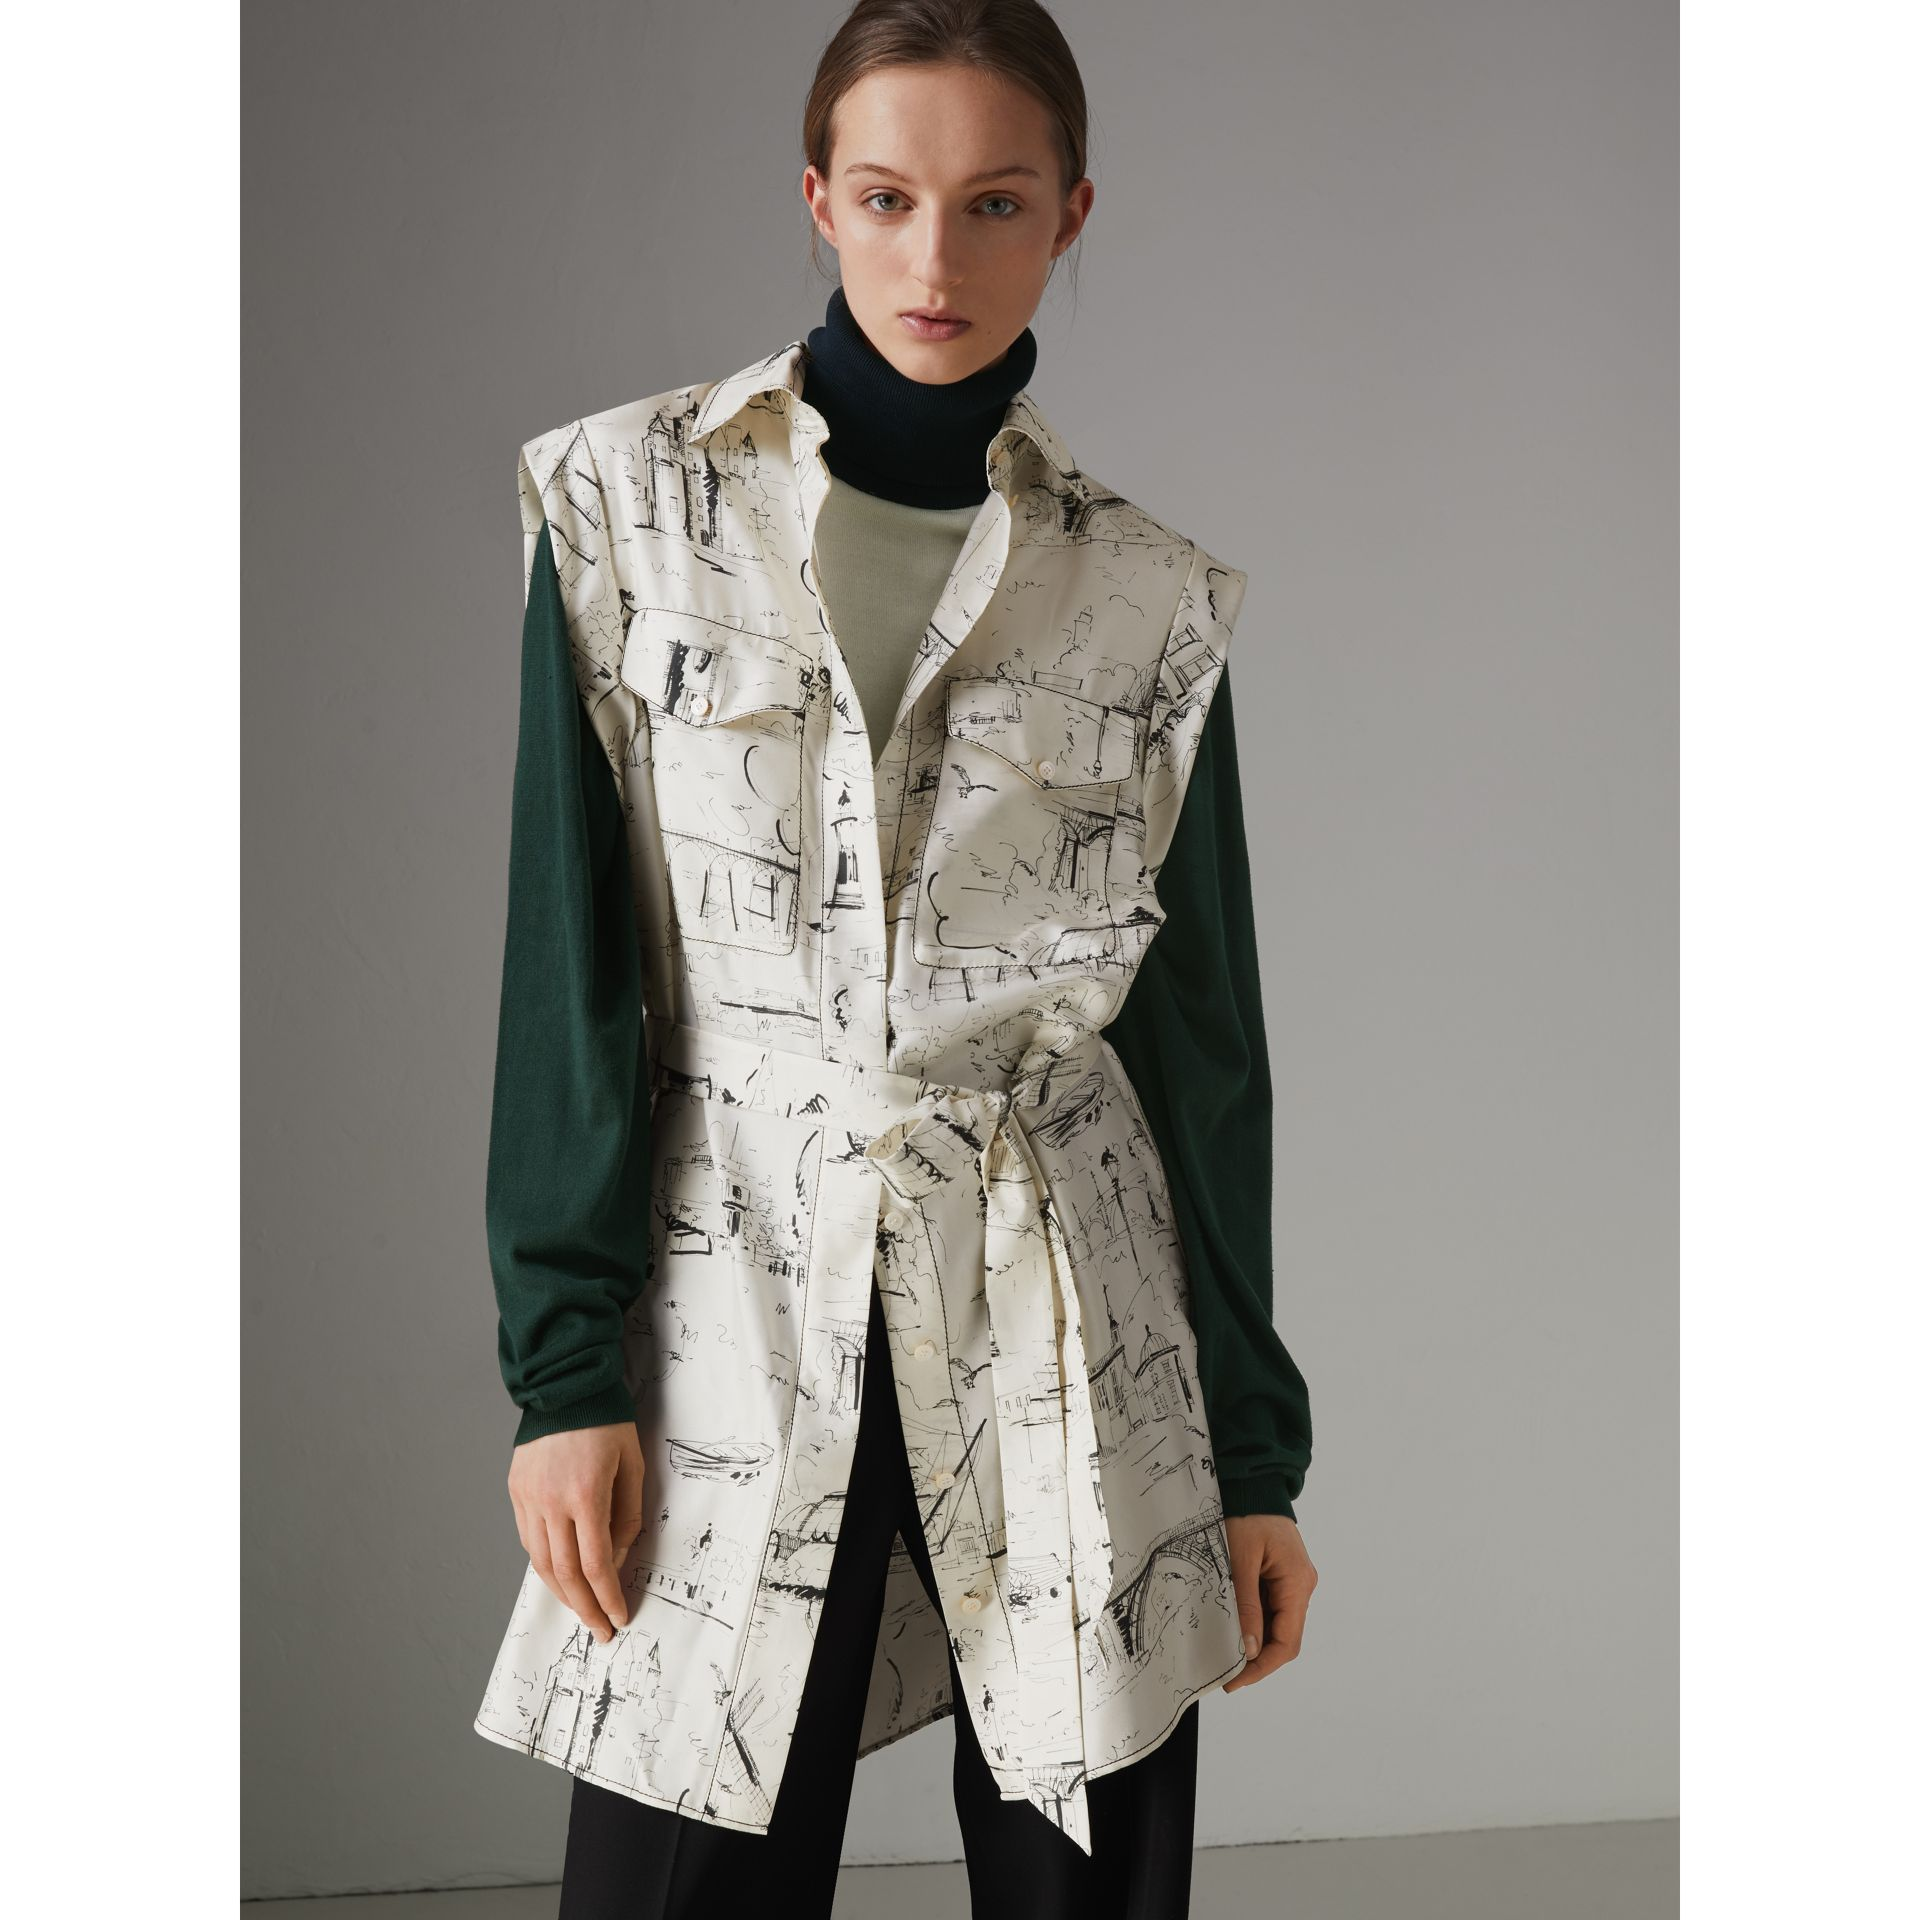 Landmark Print Silk Shirt Dress in Off White/ Black - Women | Burberry United Kingdom - gallery image 5